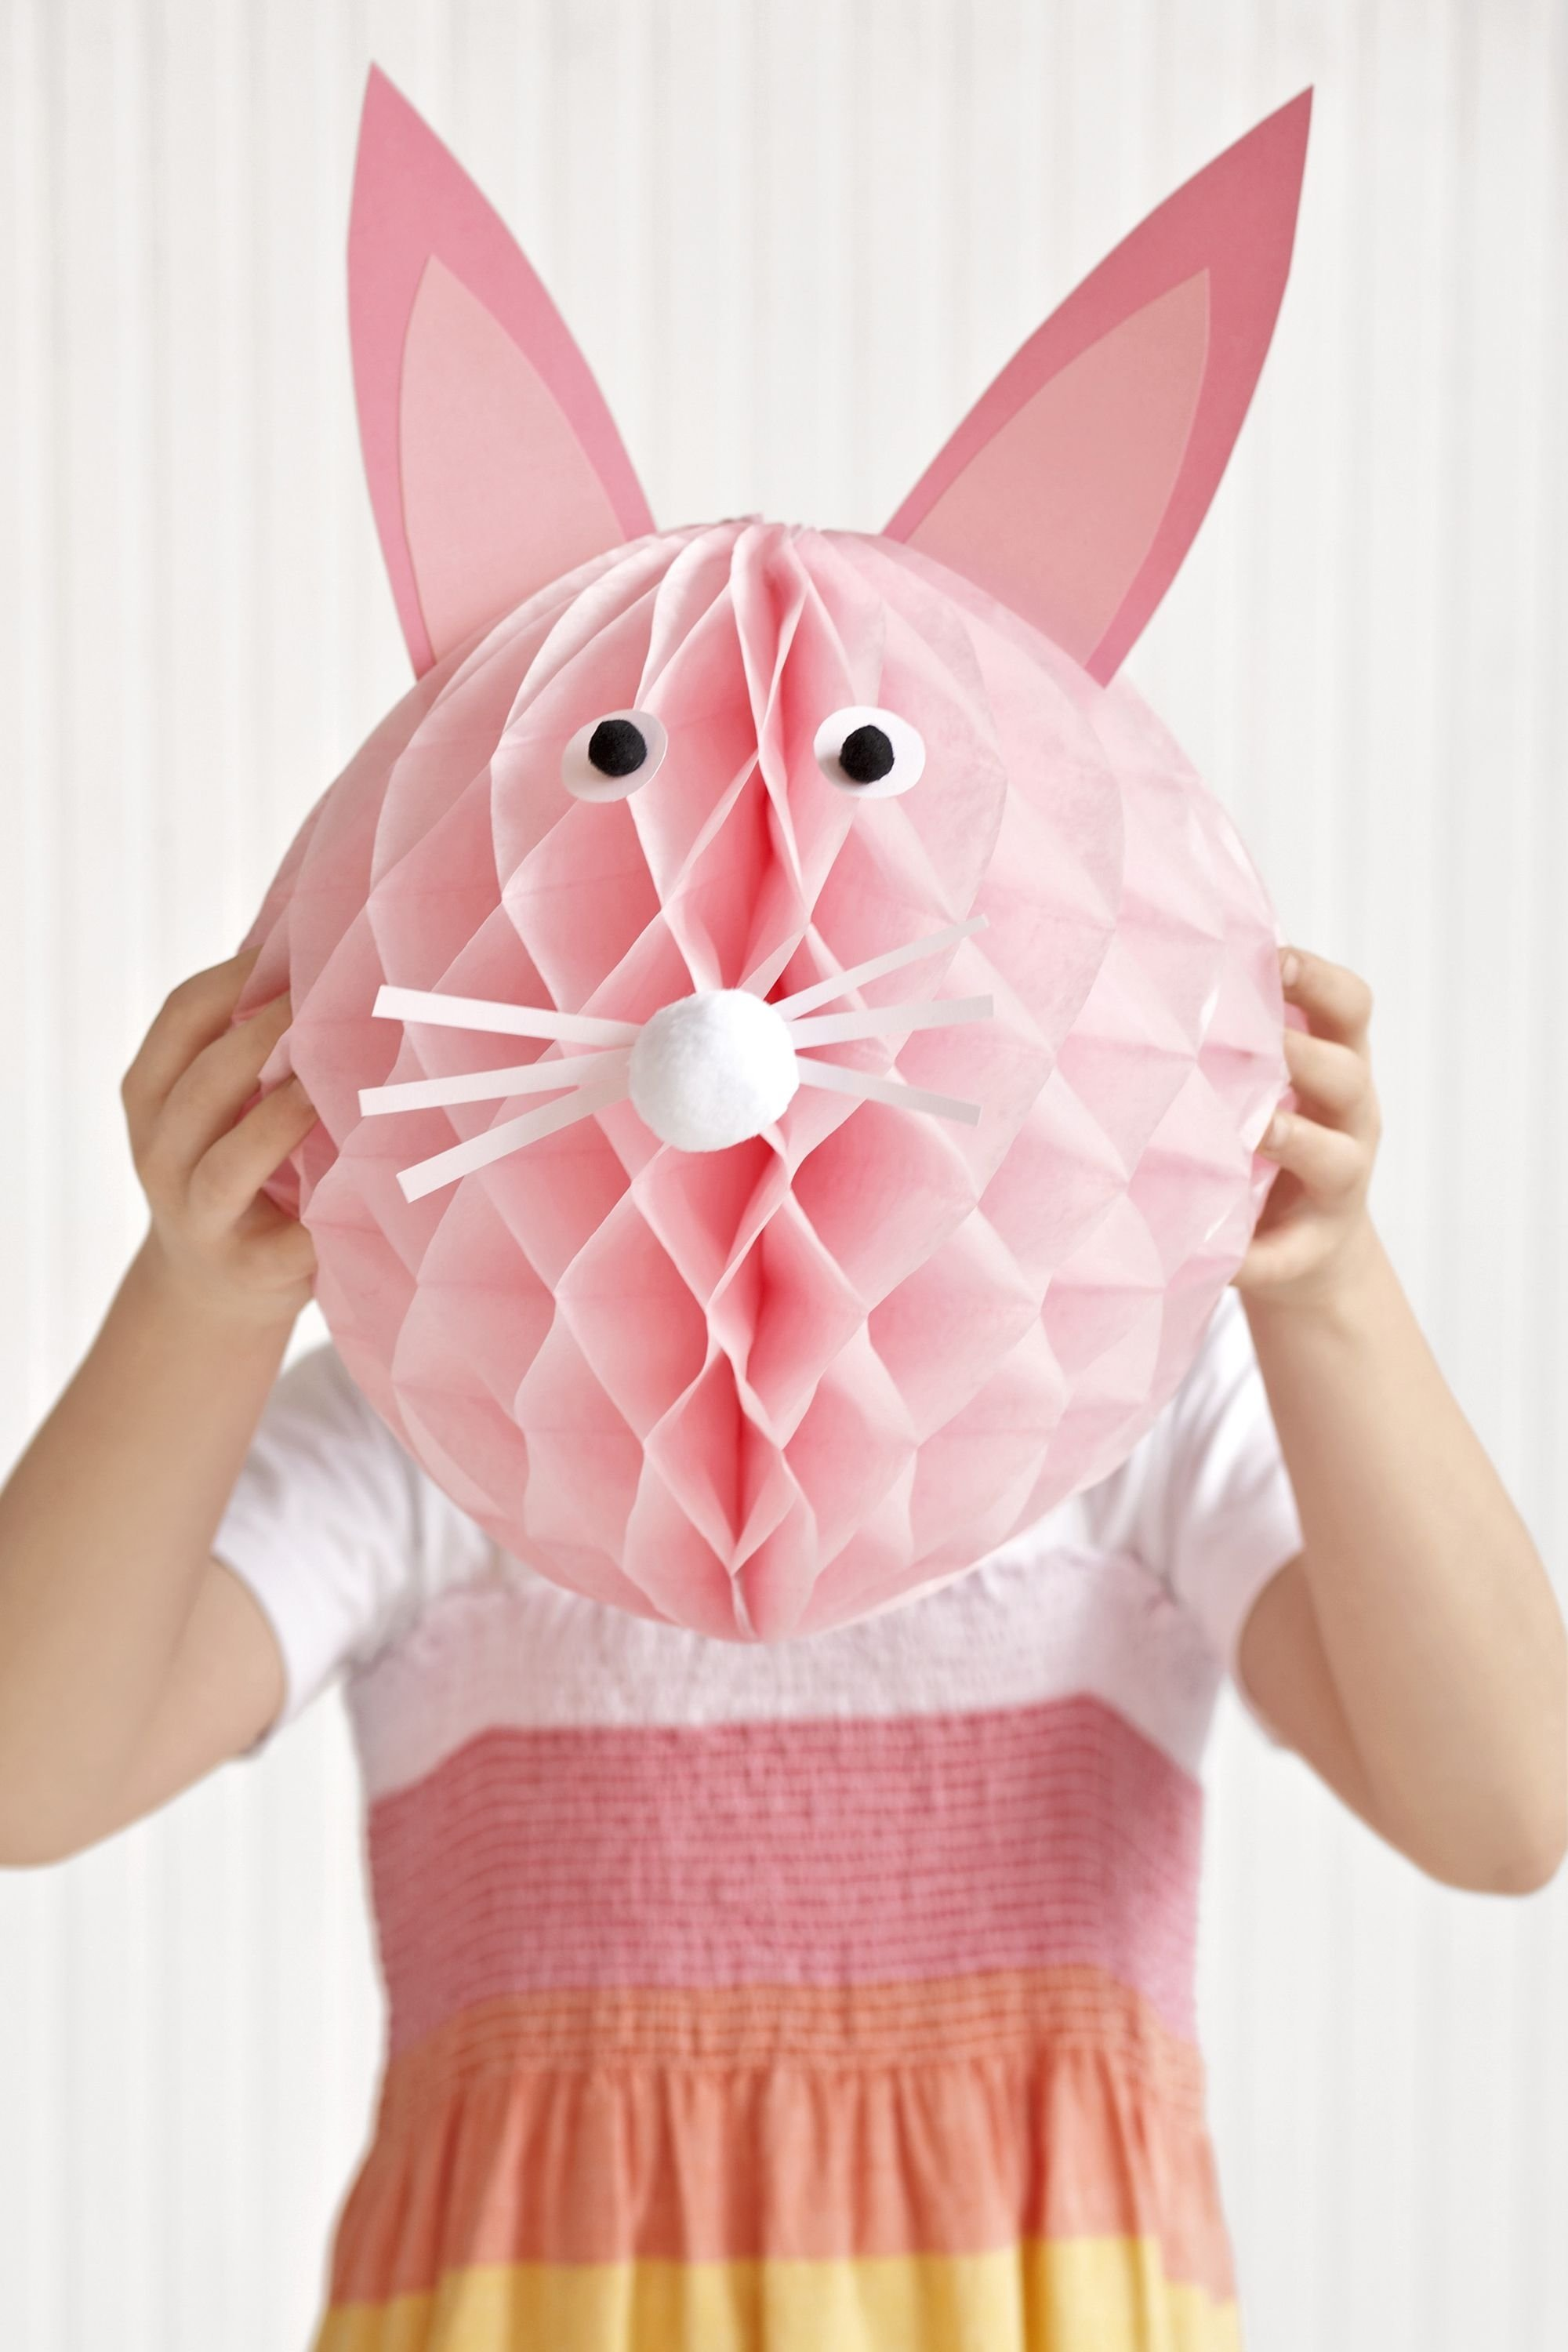 10 Great Easter Craft Ideas For Adults 46 easy easter crafts ideas for easter diy decorations gifts